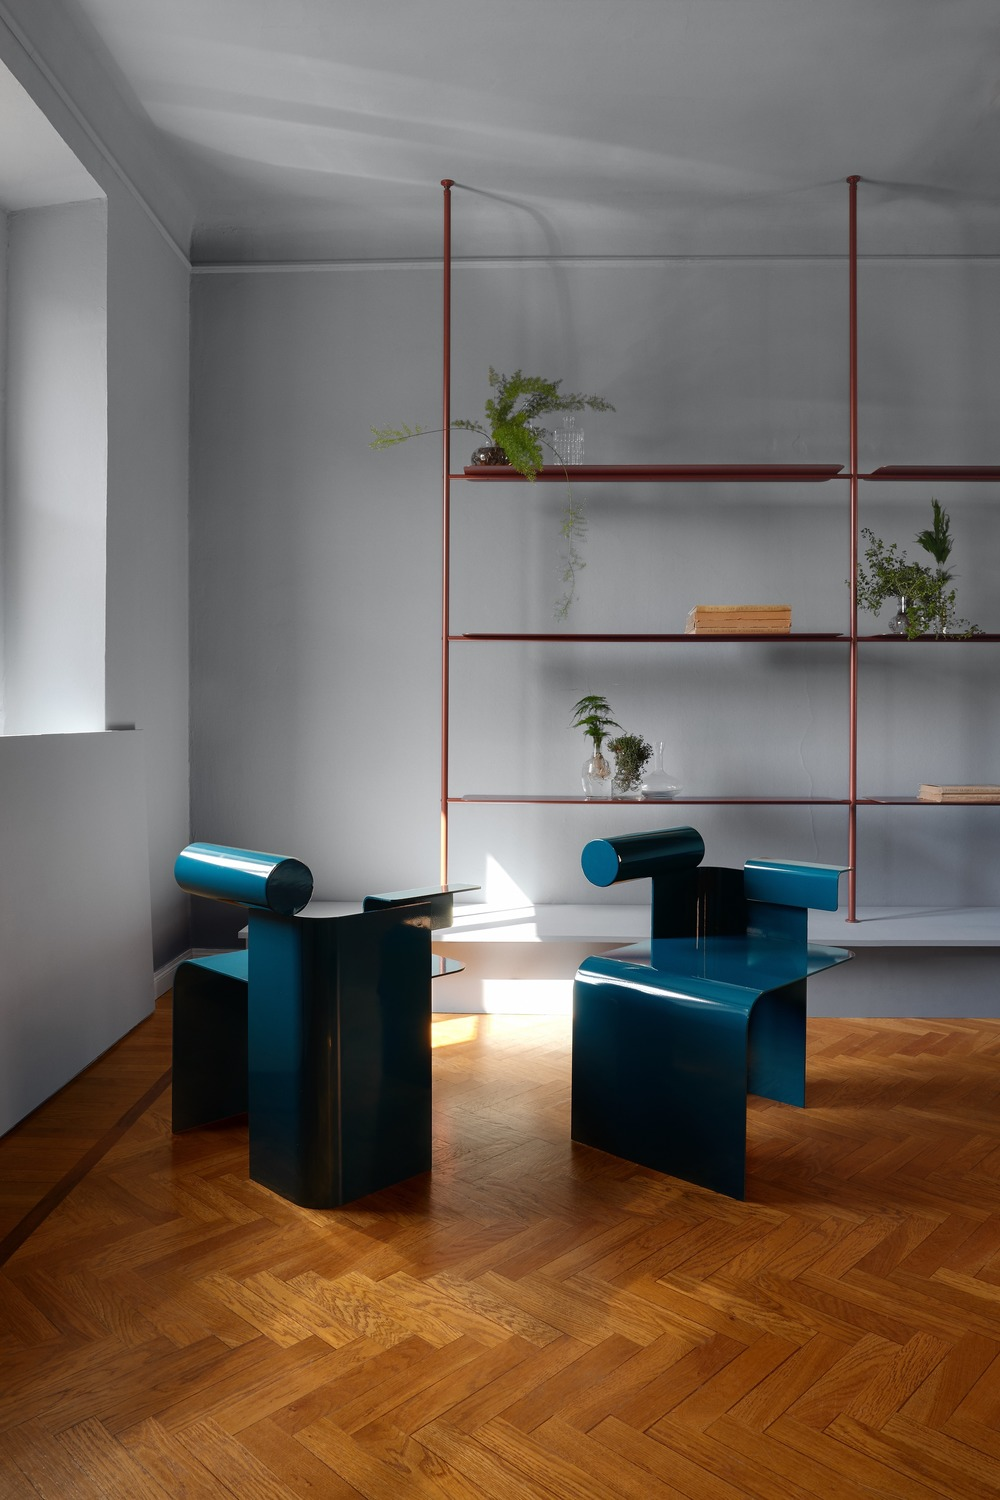 In Toto x Montréal a Milano, Archiproducts Milano, Azamit